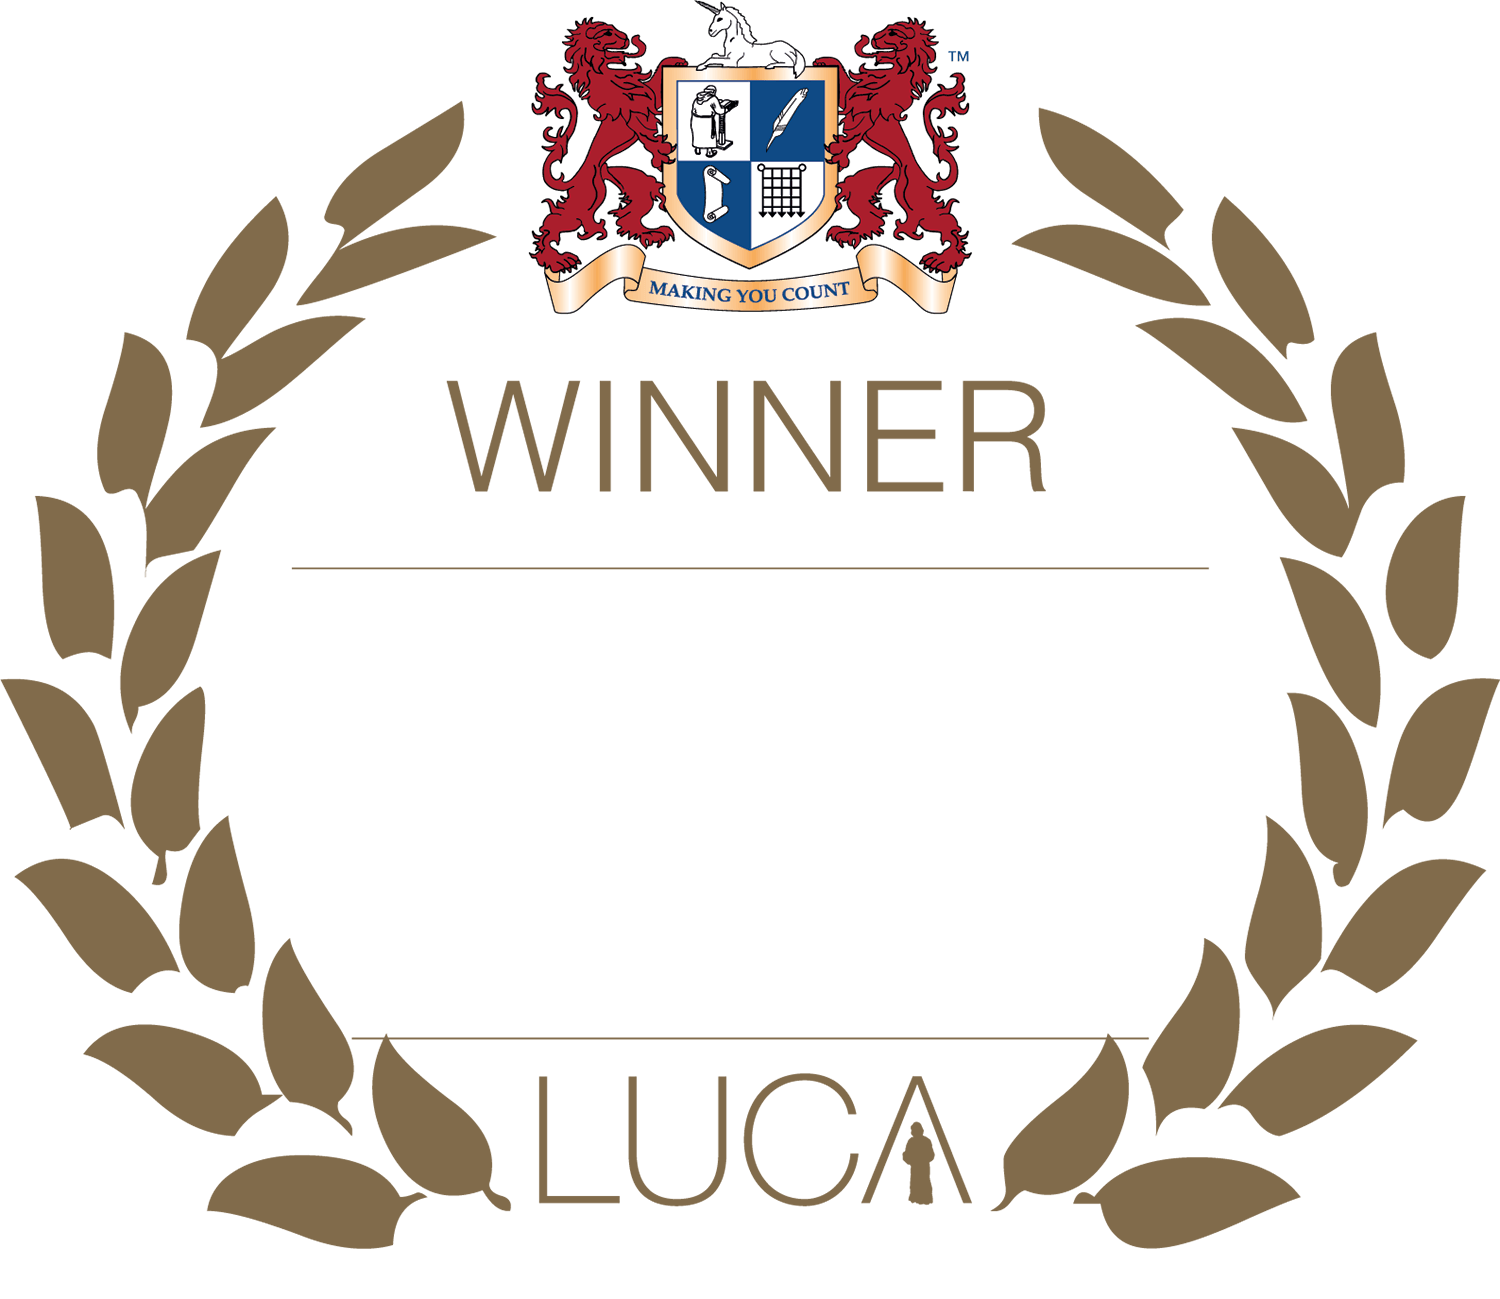 LUCA Winner Practice Management Software 2019